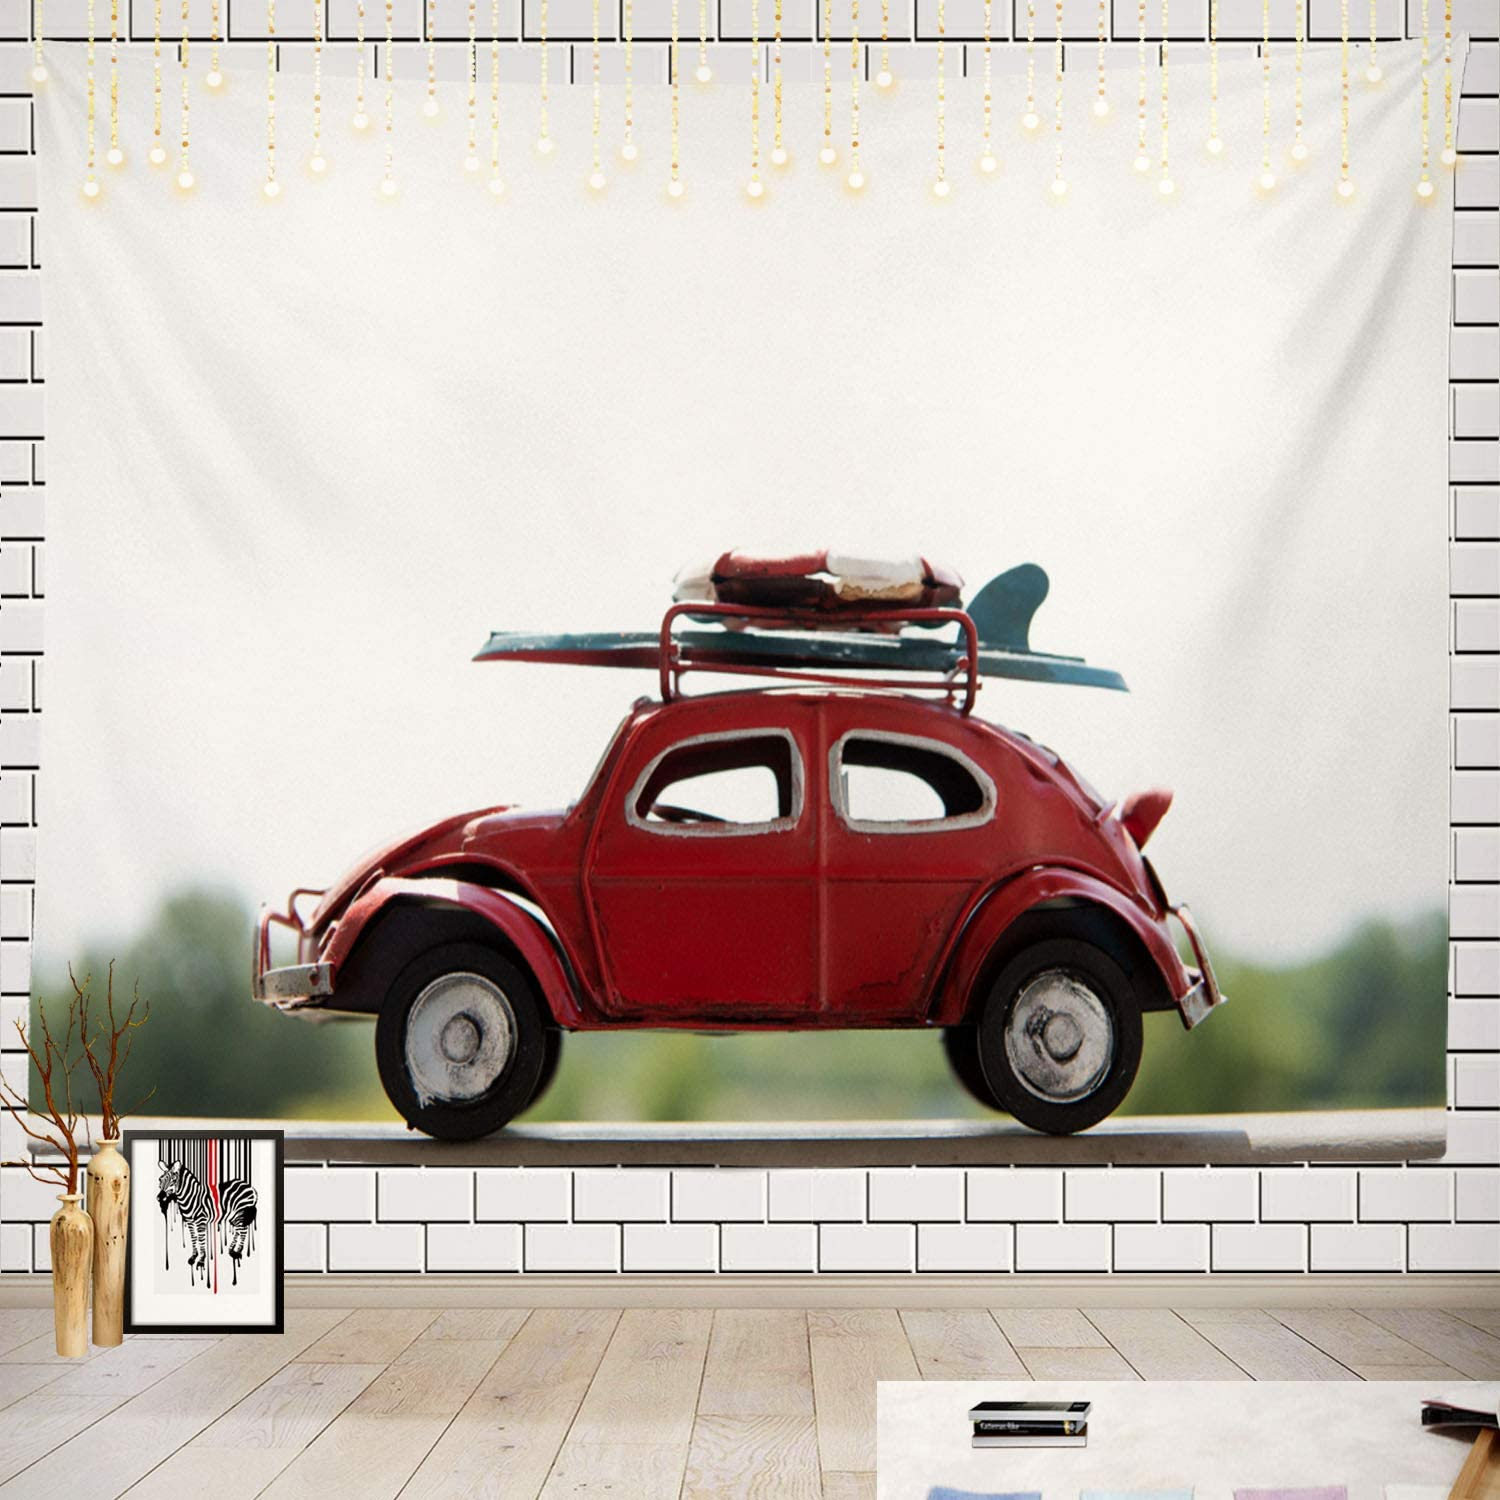 Batmerry Red Car Summer Adventure Tapestry, Warsaw July Old Red Volkswagen Beetle Toy Car with Picnic Mat Hippie Trippy Tapestry Wall Art Decor for Bedroom Living Room, 51.2 x 59.1 Inches, Red Car